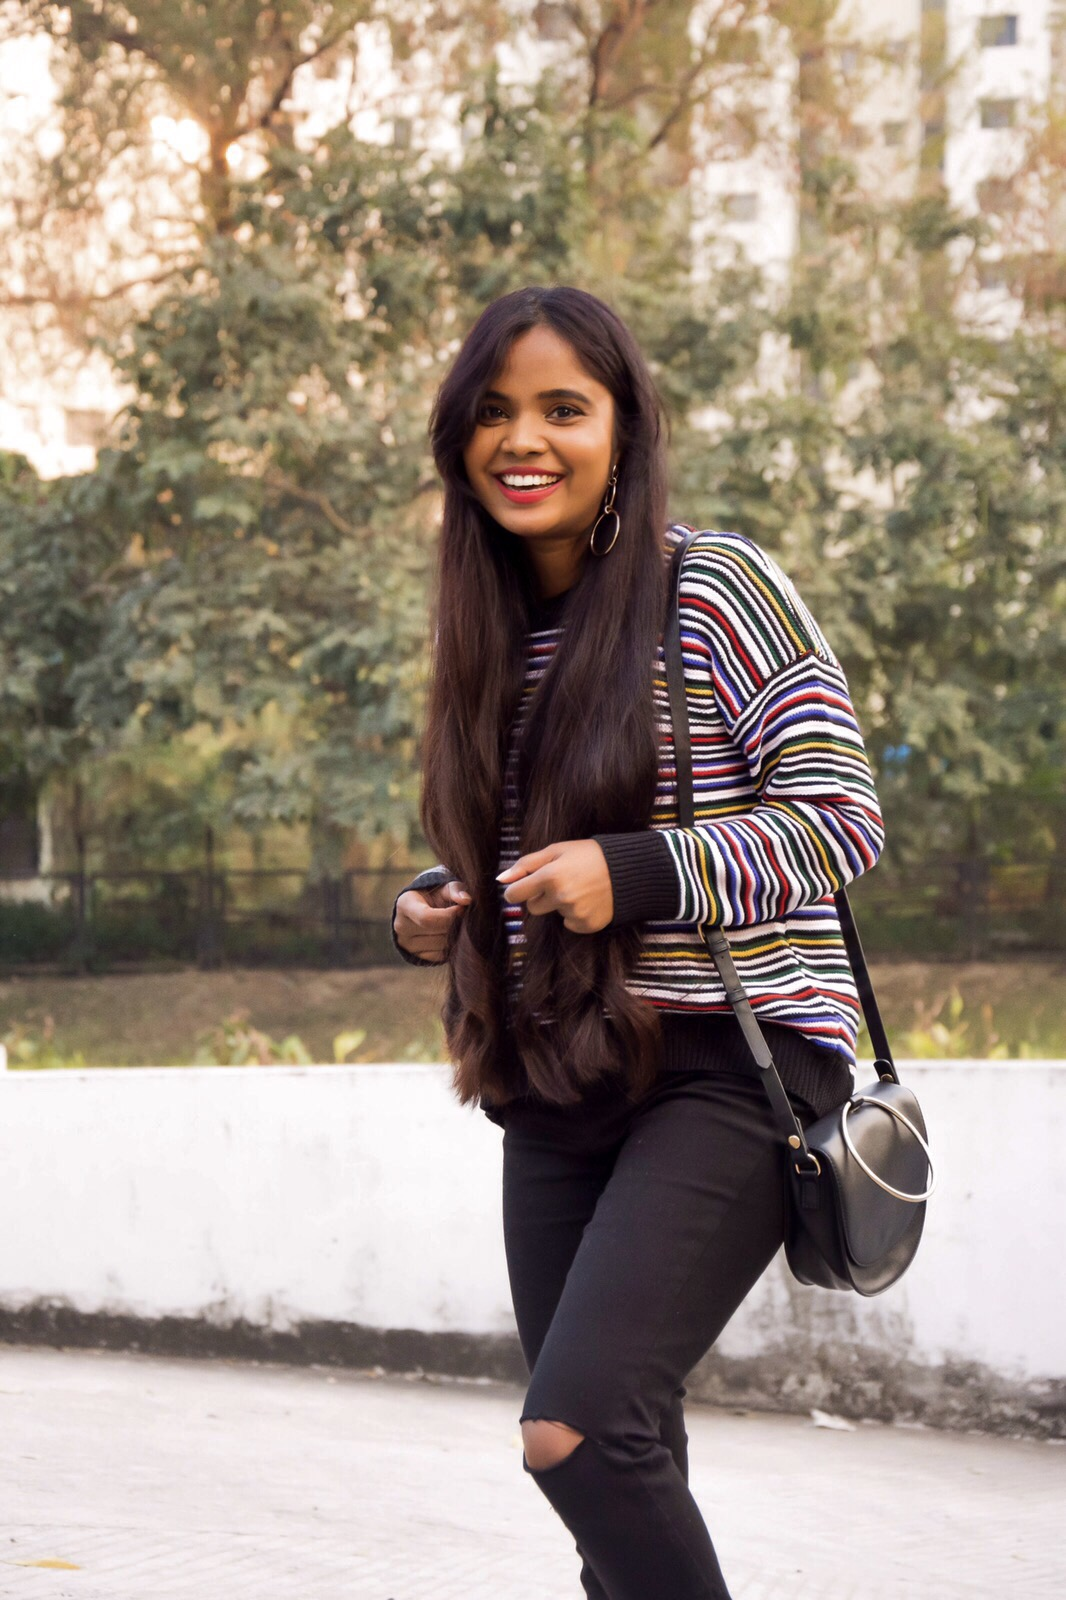 striped jumpers : 2 different styles with denims